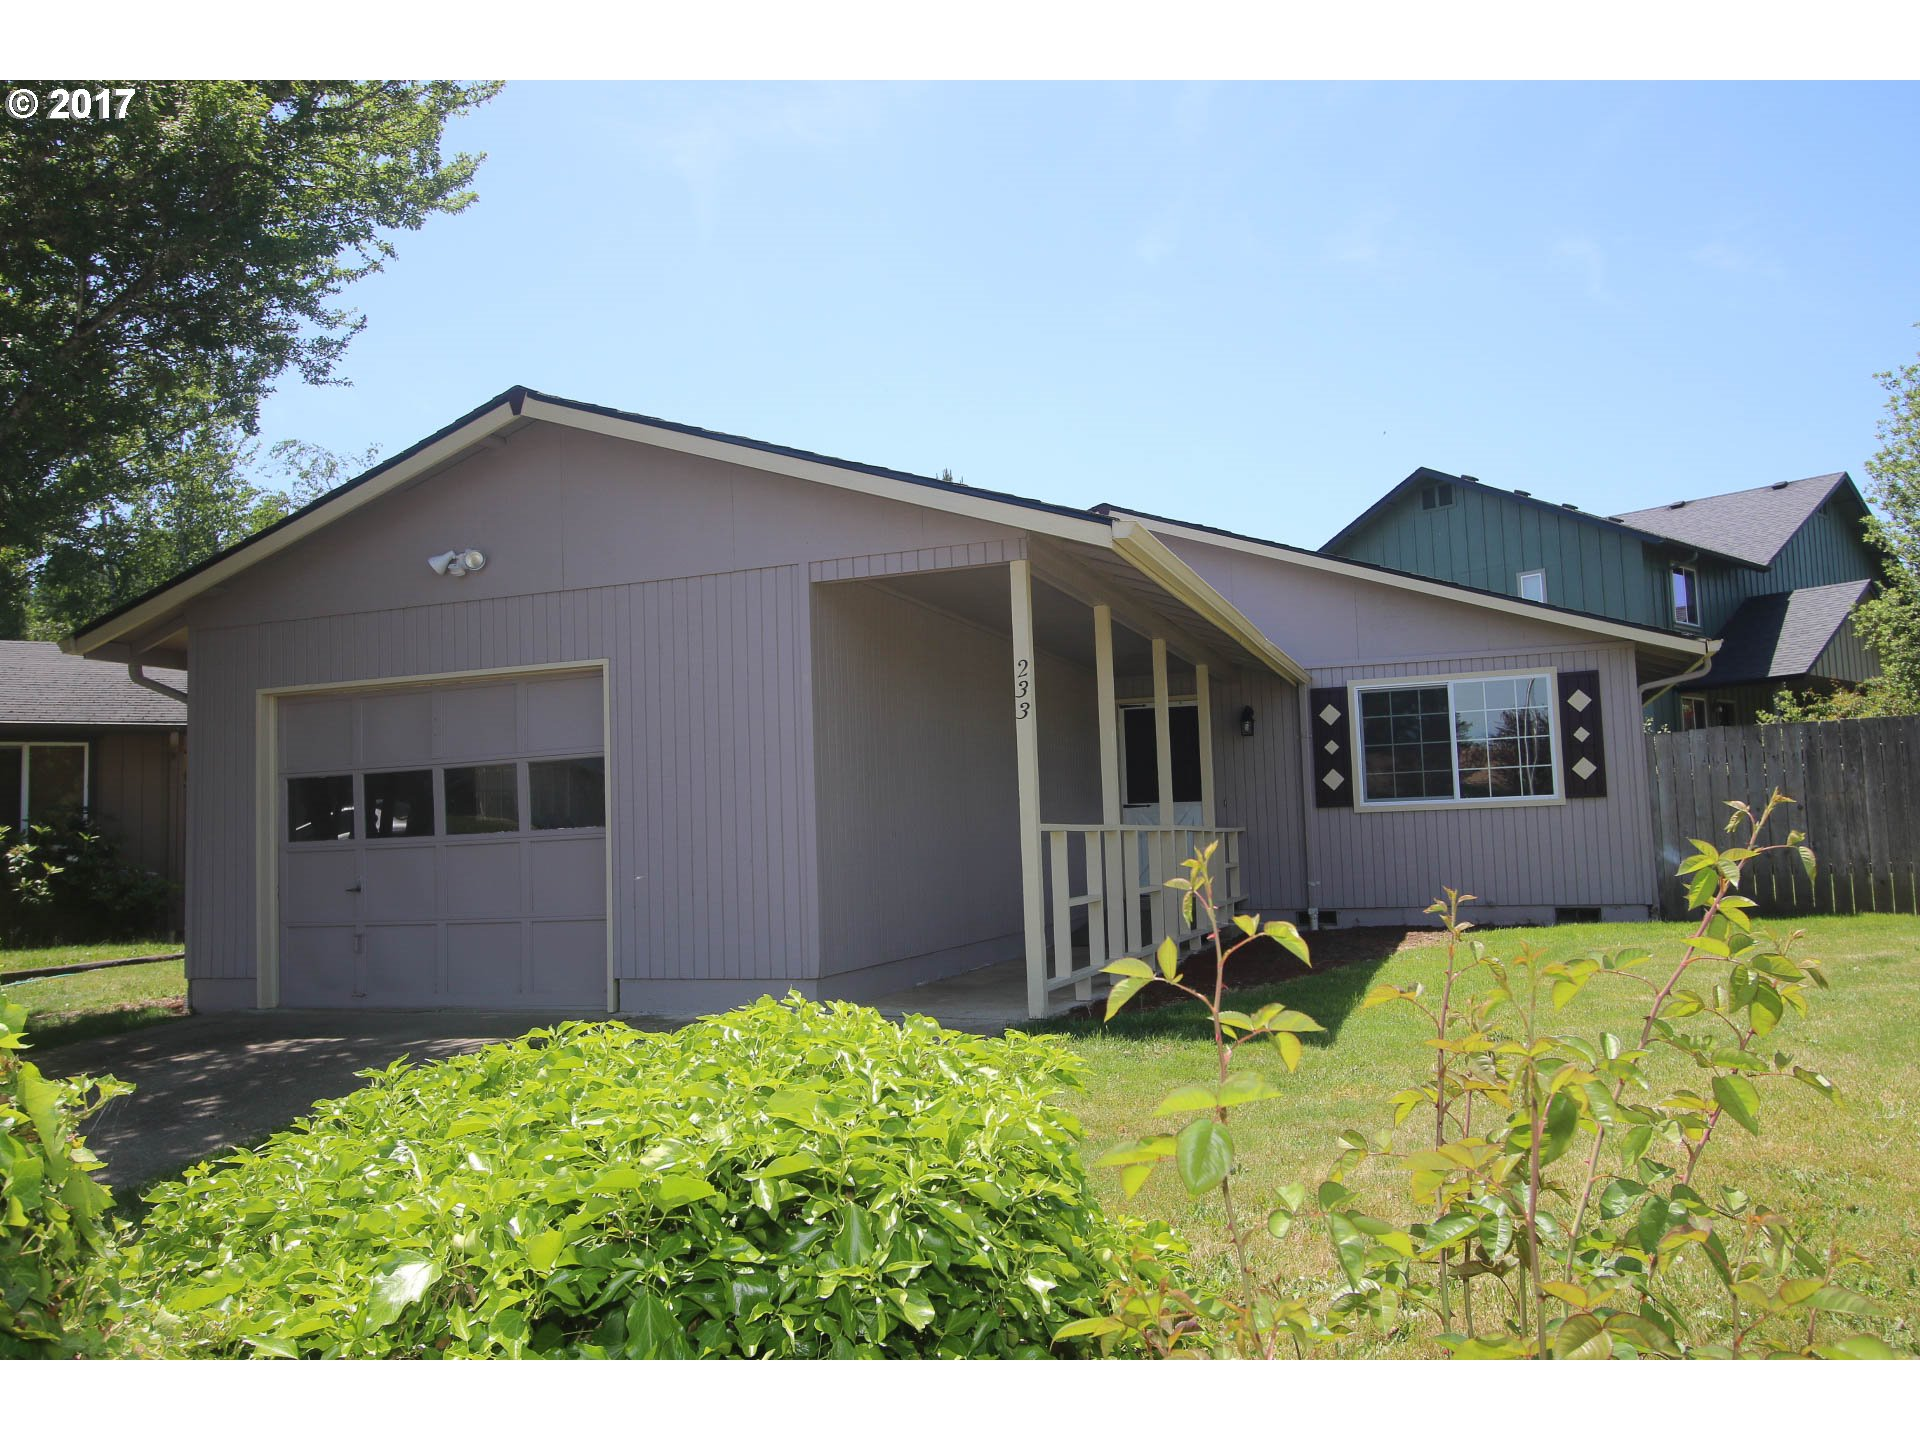 233 W F ST, Creswell, OR 97426